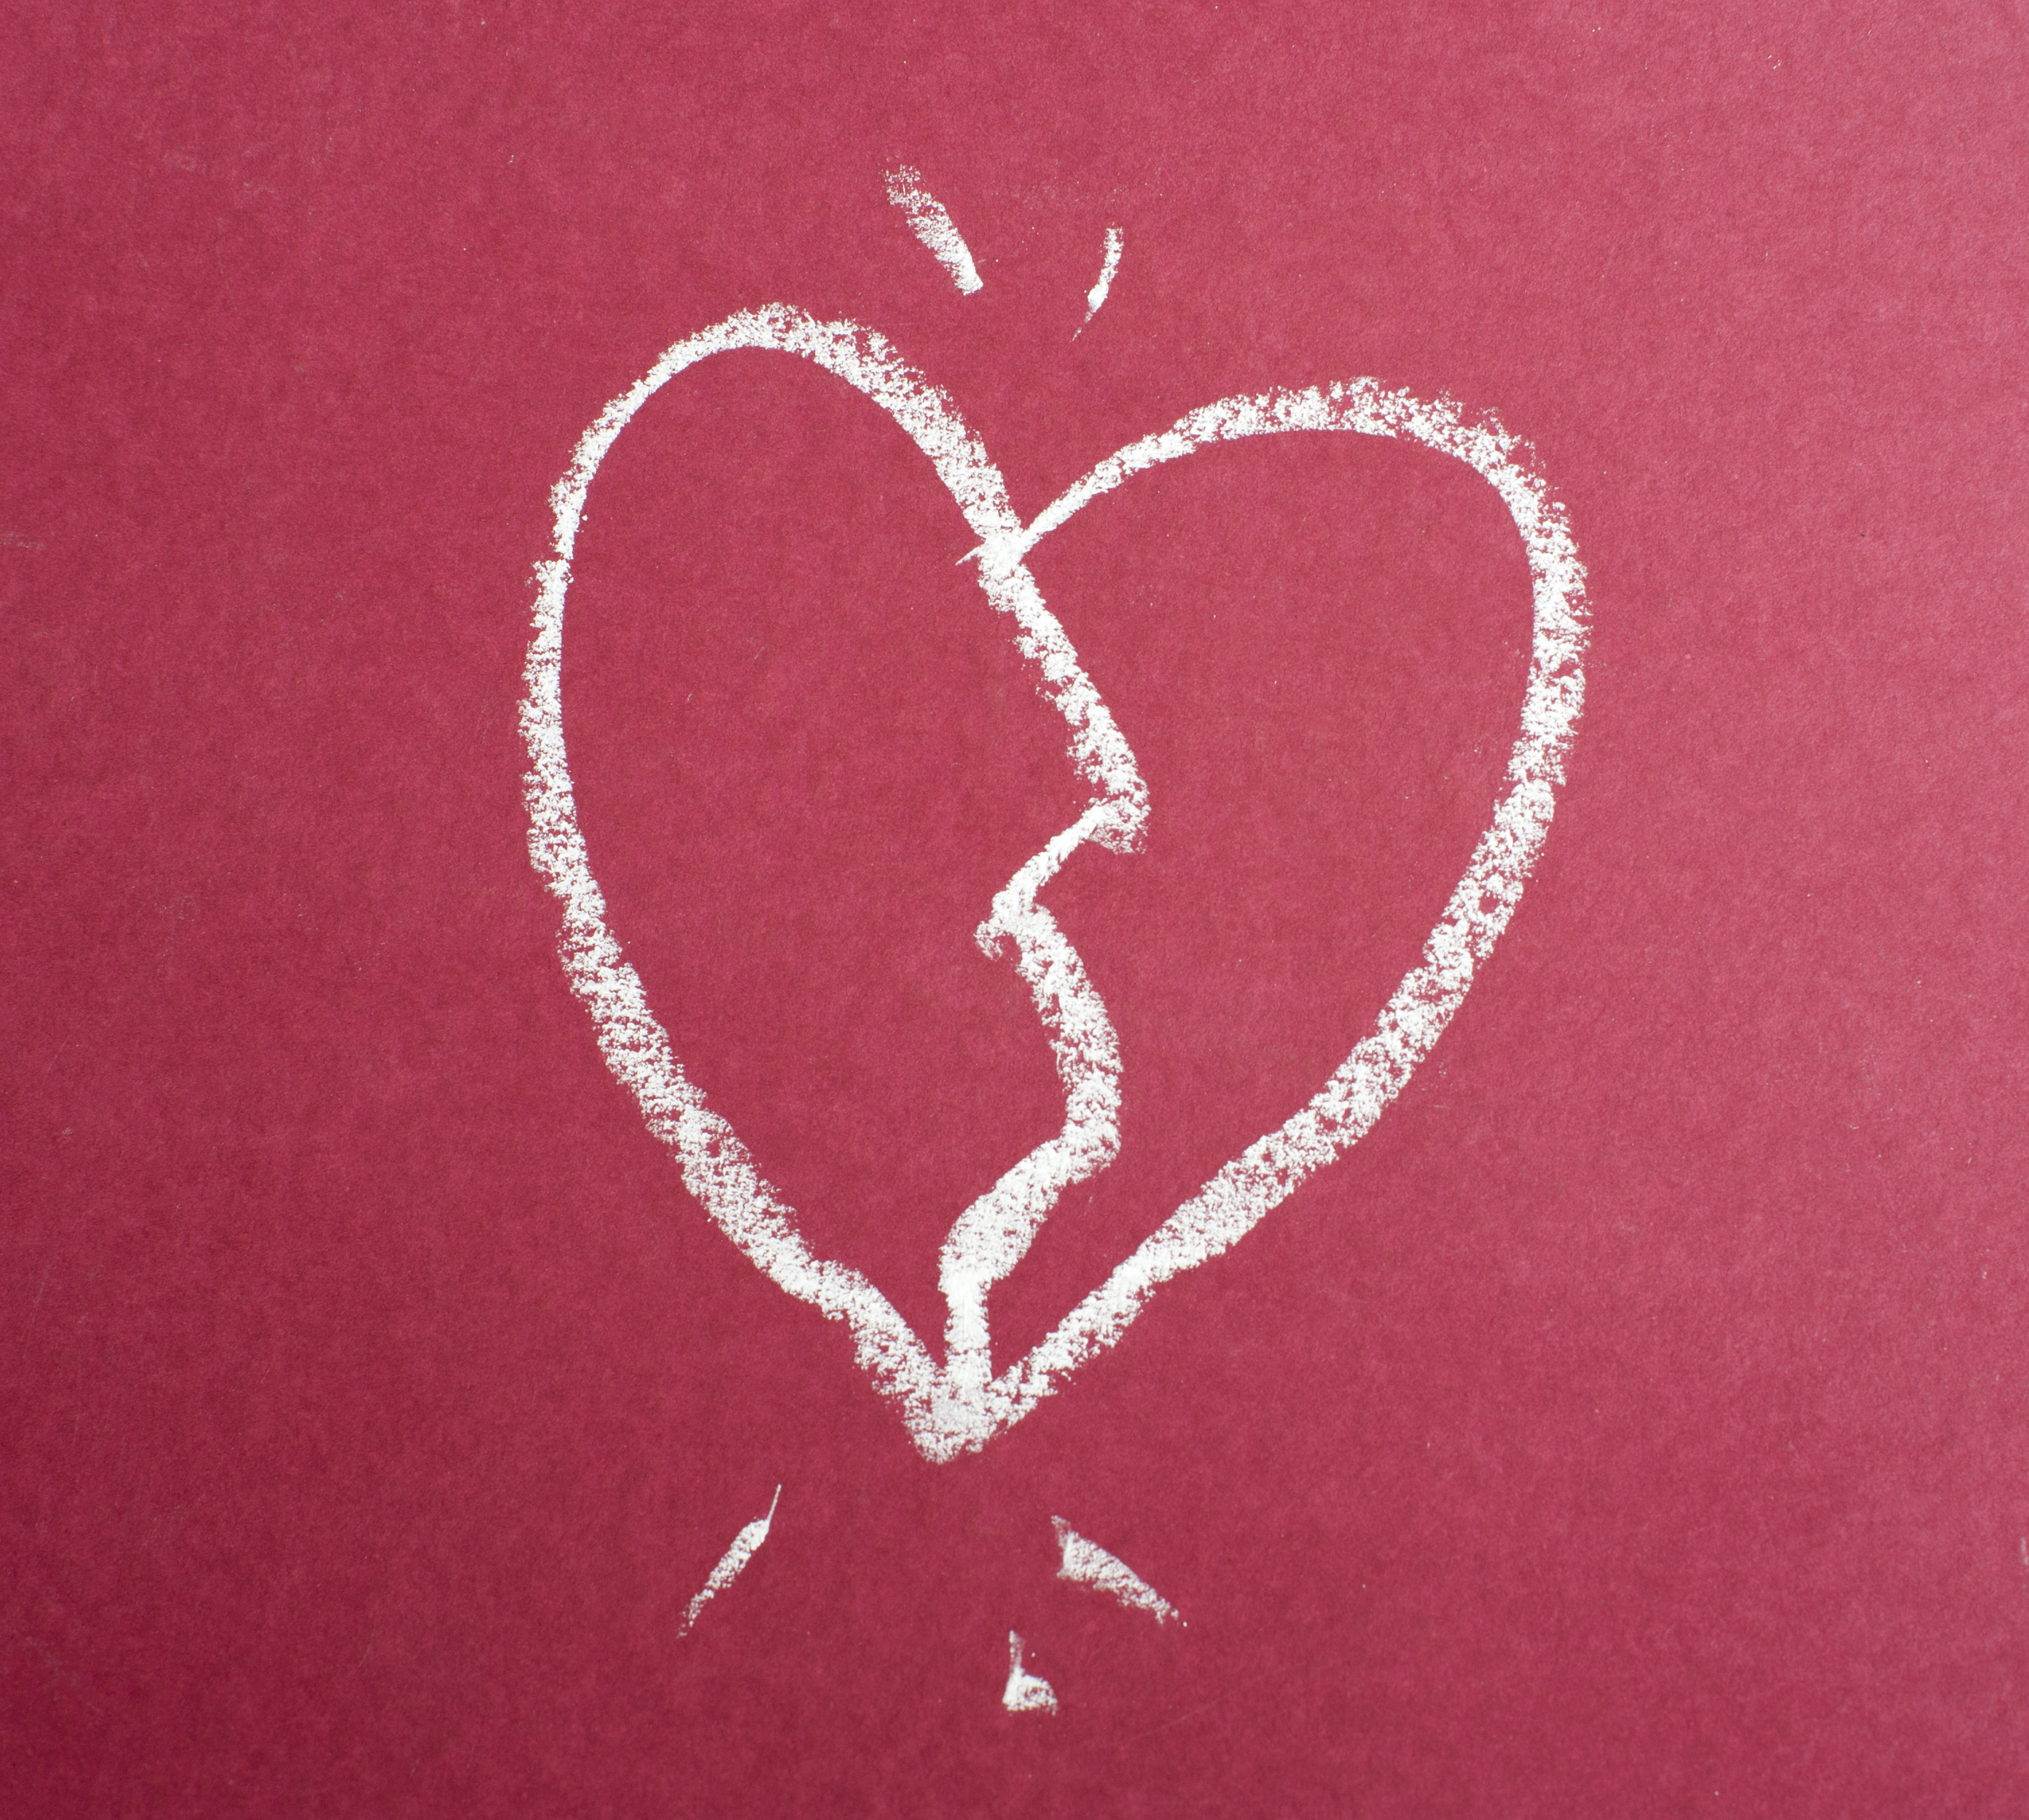 A sketched broken love heart hand drawn with white chalk on a red chalkboard.